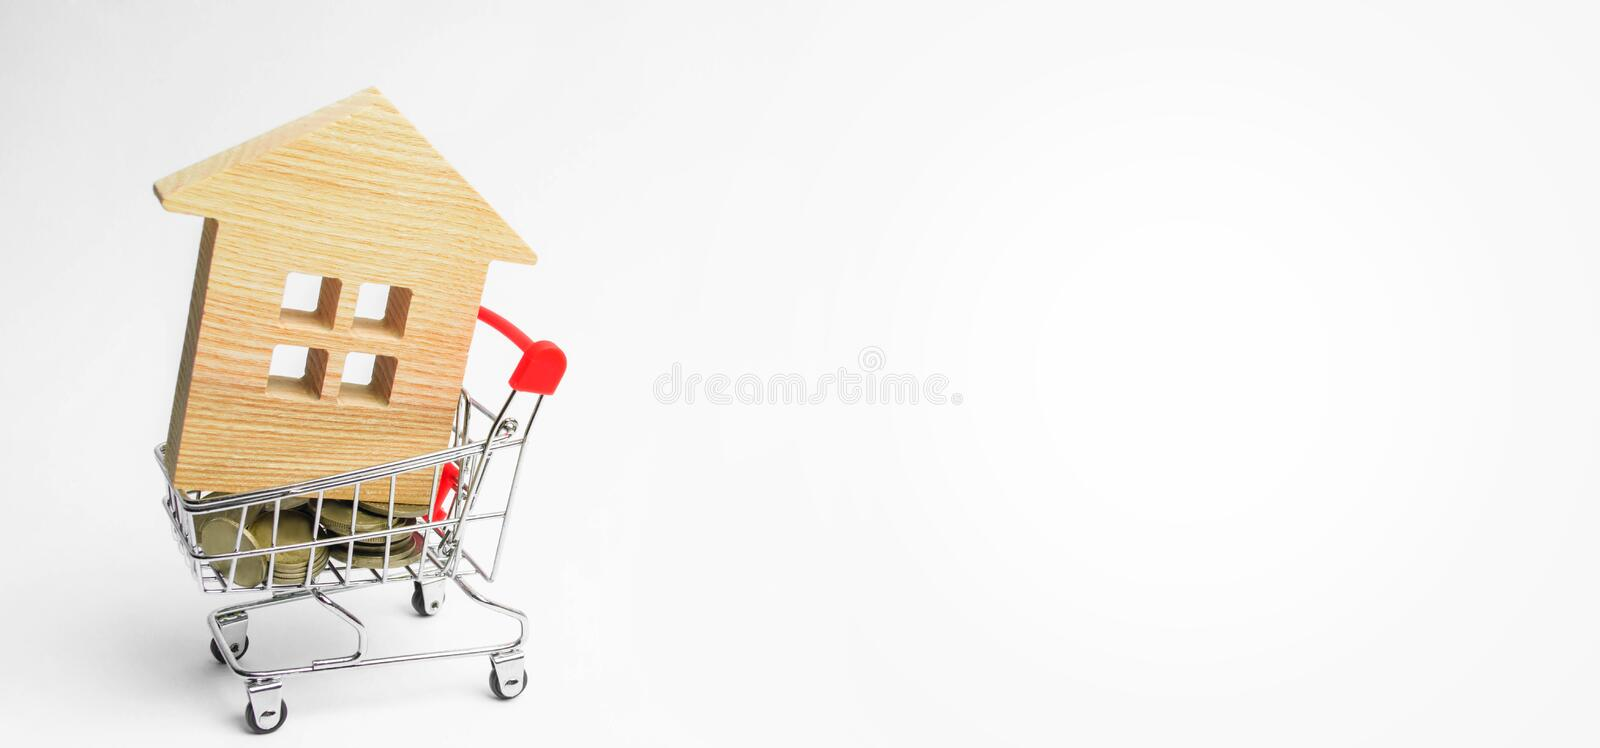 Property investment and house mortgage financial concept. buying, renting and selling apartments. real estate. Wooden house in a S stock images